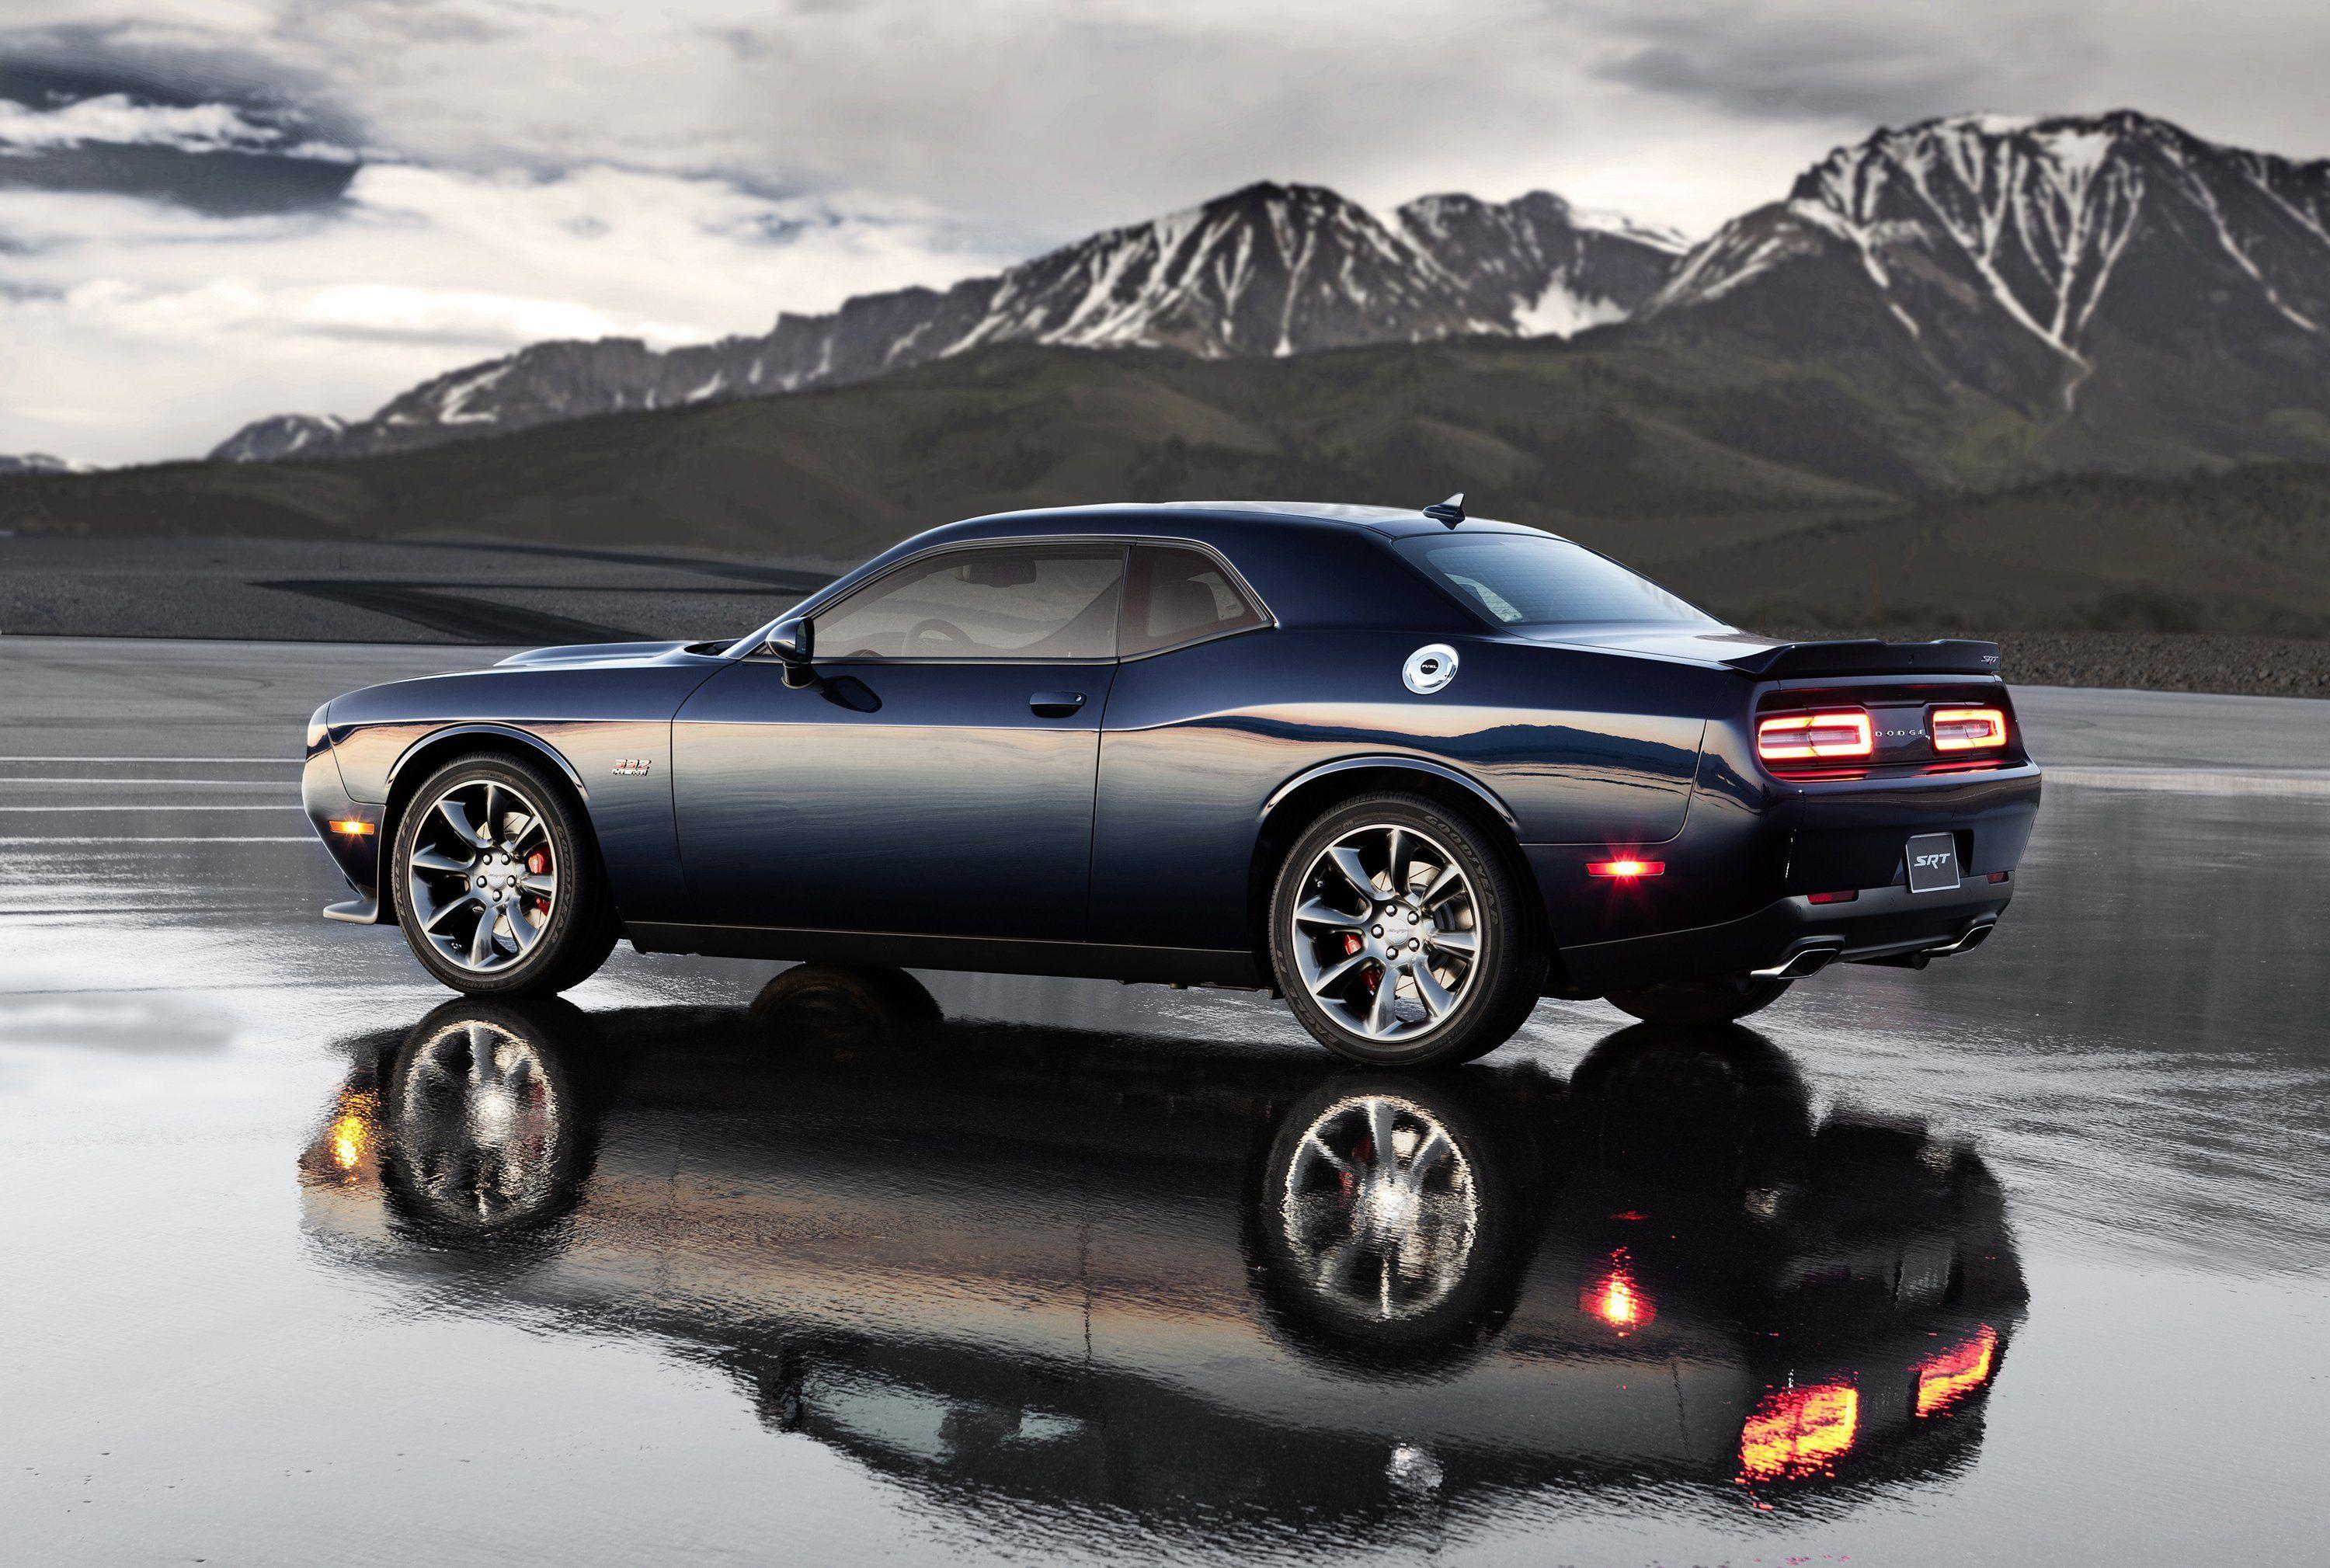 2017 Dodge Challenger Black Wallpaper Backgrounds